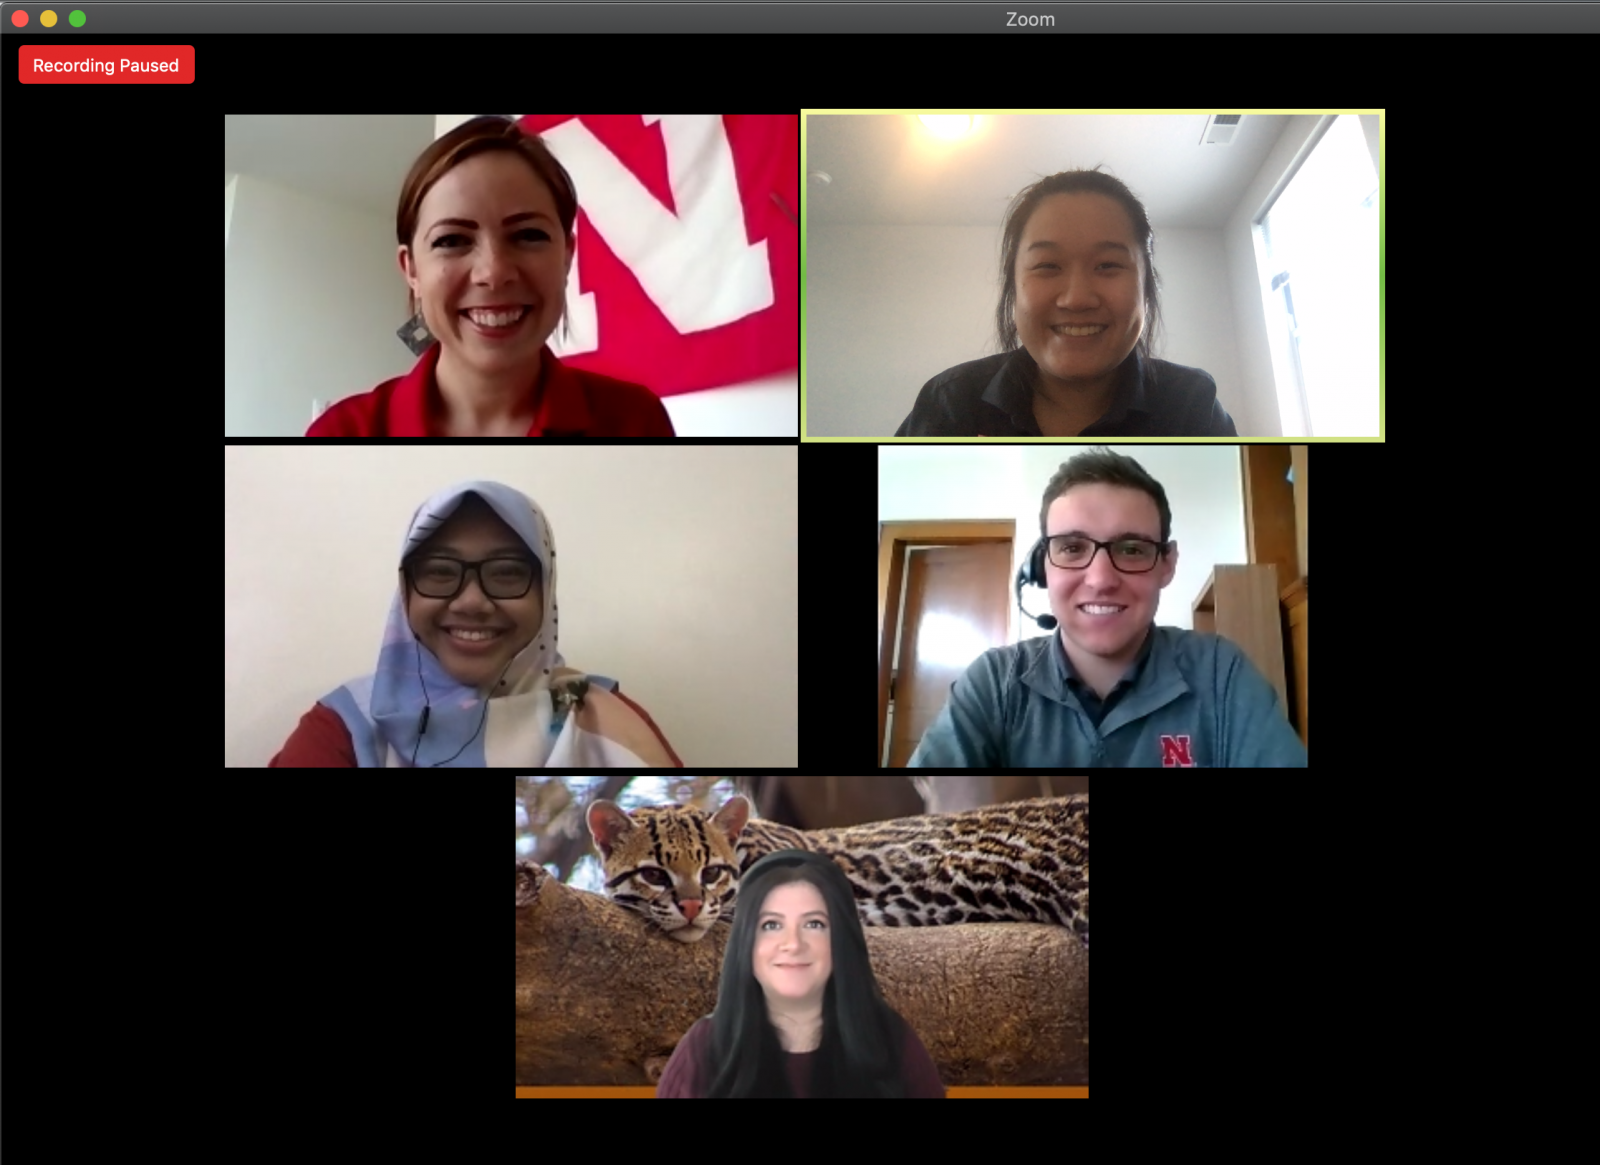 Zoom meeting screenshot featuring past and present Fulbright scholars who shared their Nebraska experiences (second row l to r: Kiki Rizki Amalia and Agustín Olivo, third row: Gabriela Palomo-Munoz) participate in an online panel discussion, moderated by IANR Global Staff Brianne Wolf and Yi Xuen Tay (first row, l to r)